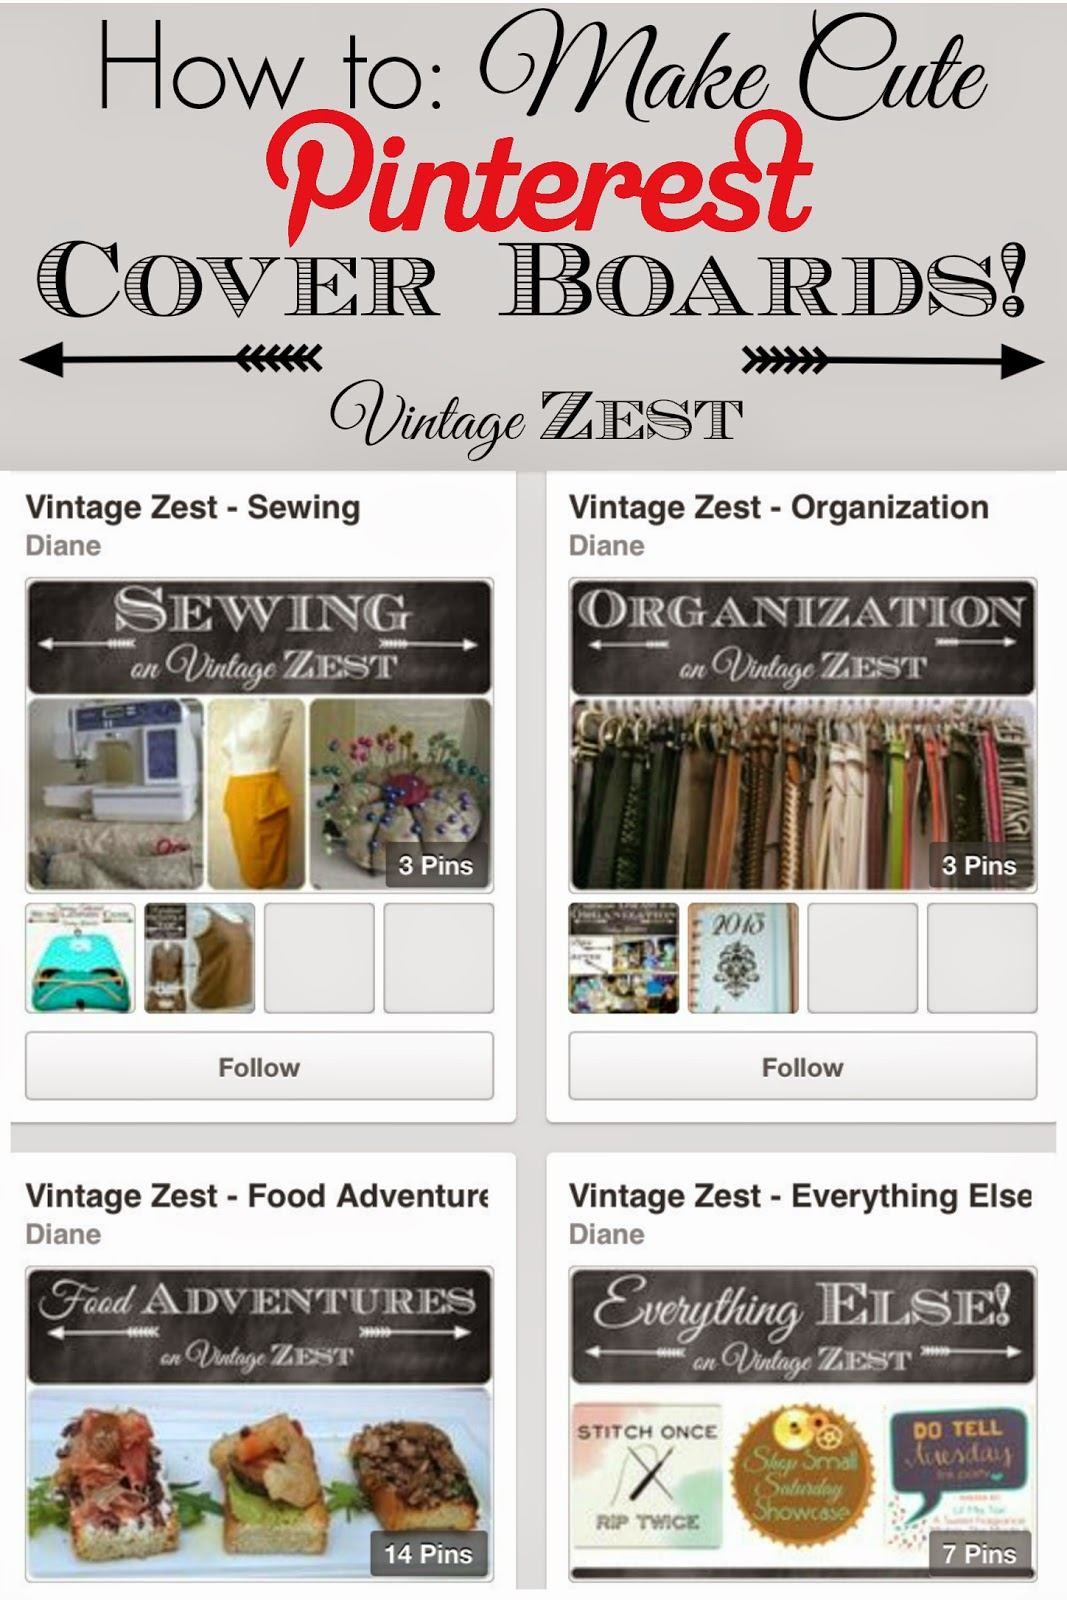 Make Cute Pinterest Board Covers by Vintage Zest